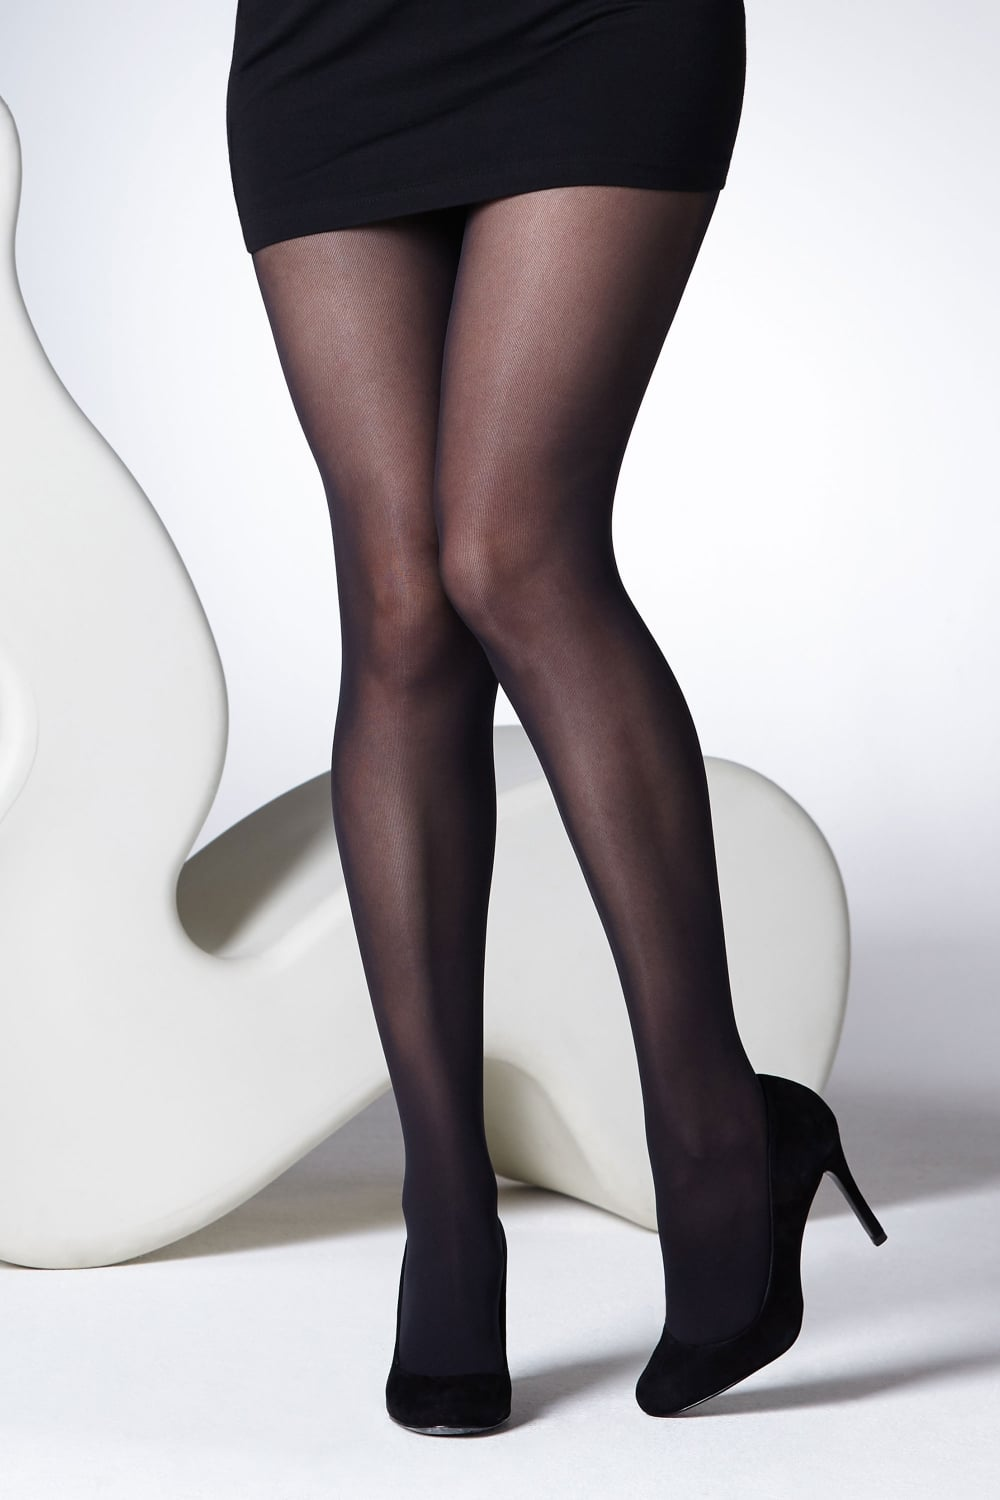 ba0668bfc68 Gipsy Pure Shapers 30 Denier Tights